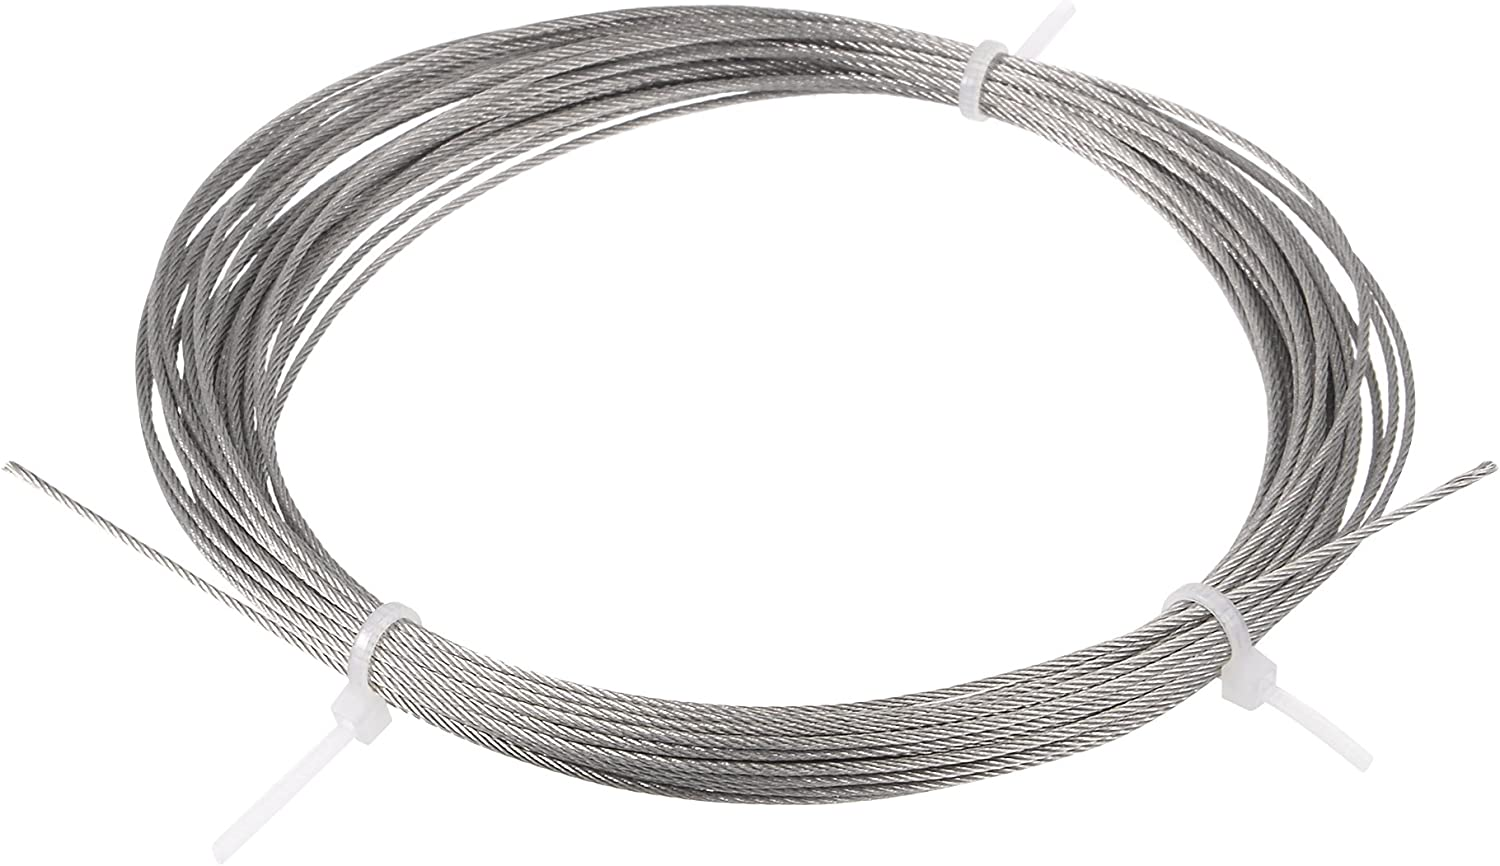 1mm Wire Rope 7x7 Stainless Steel Rope Price Per Metre FREE DELIVERY!!!!!!